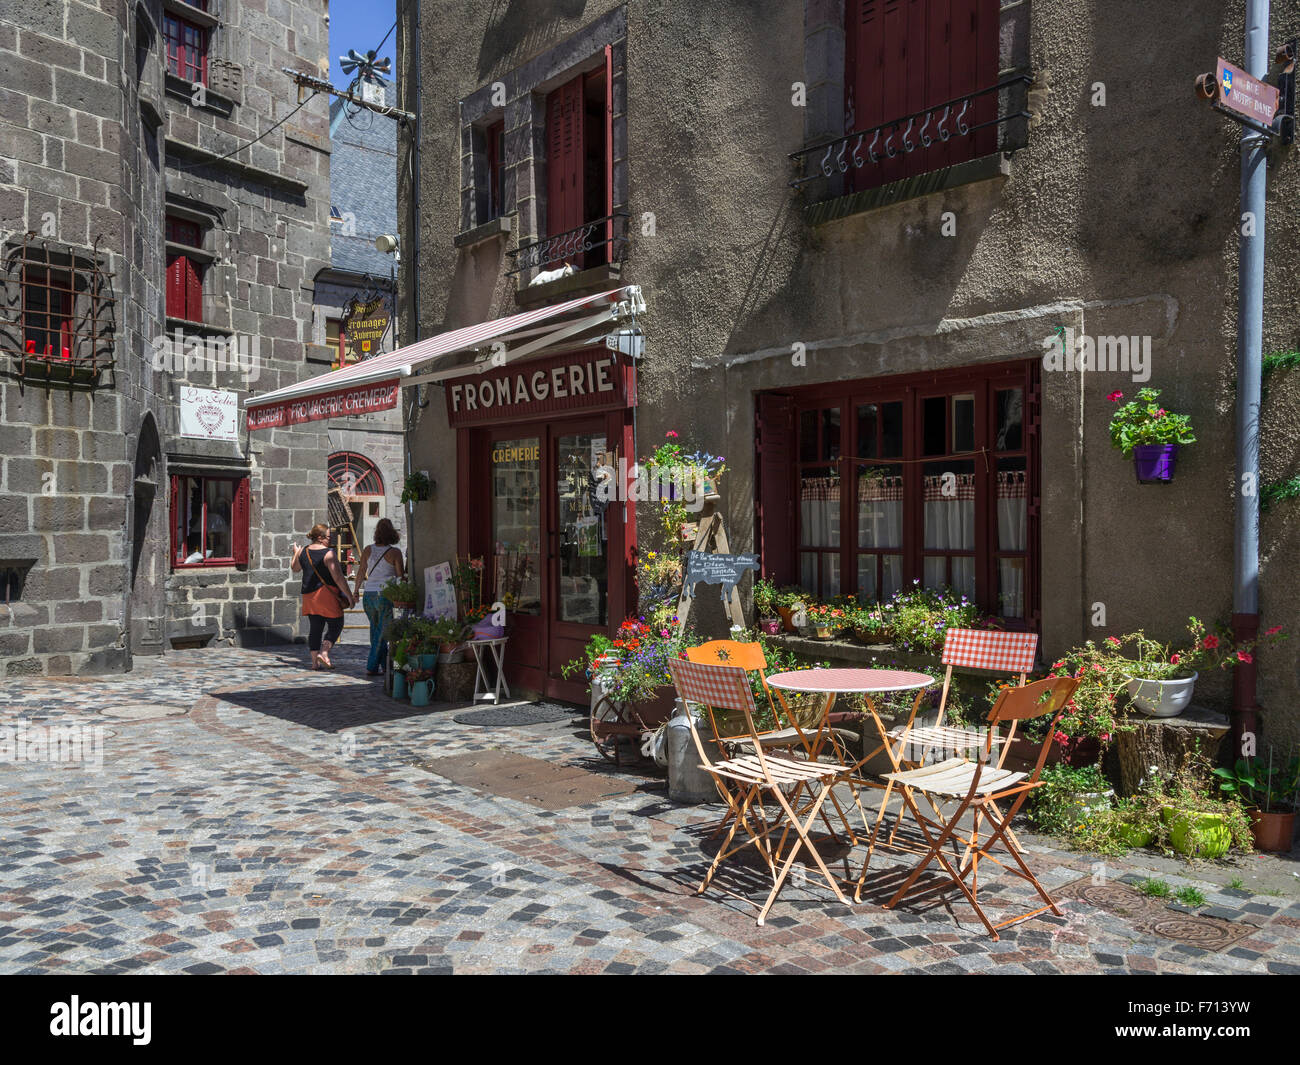 Historic centre with Fromagerie, Besse-et-Saint-Anastaise, Auvergne, France - Stock Image